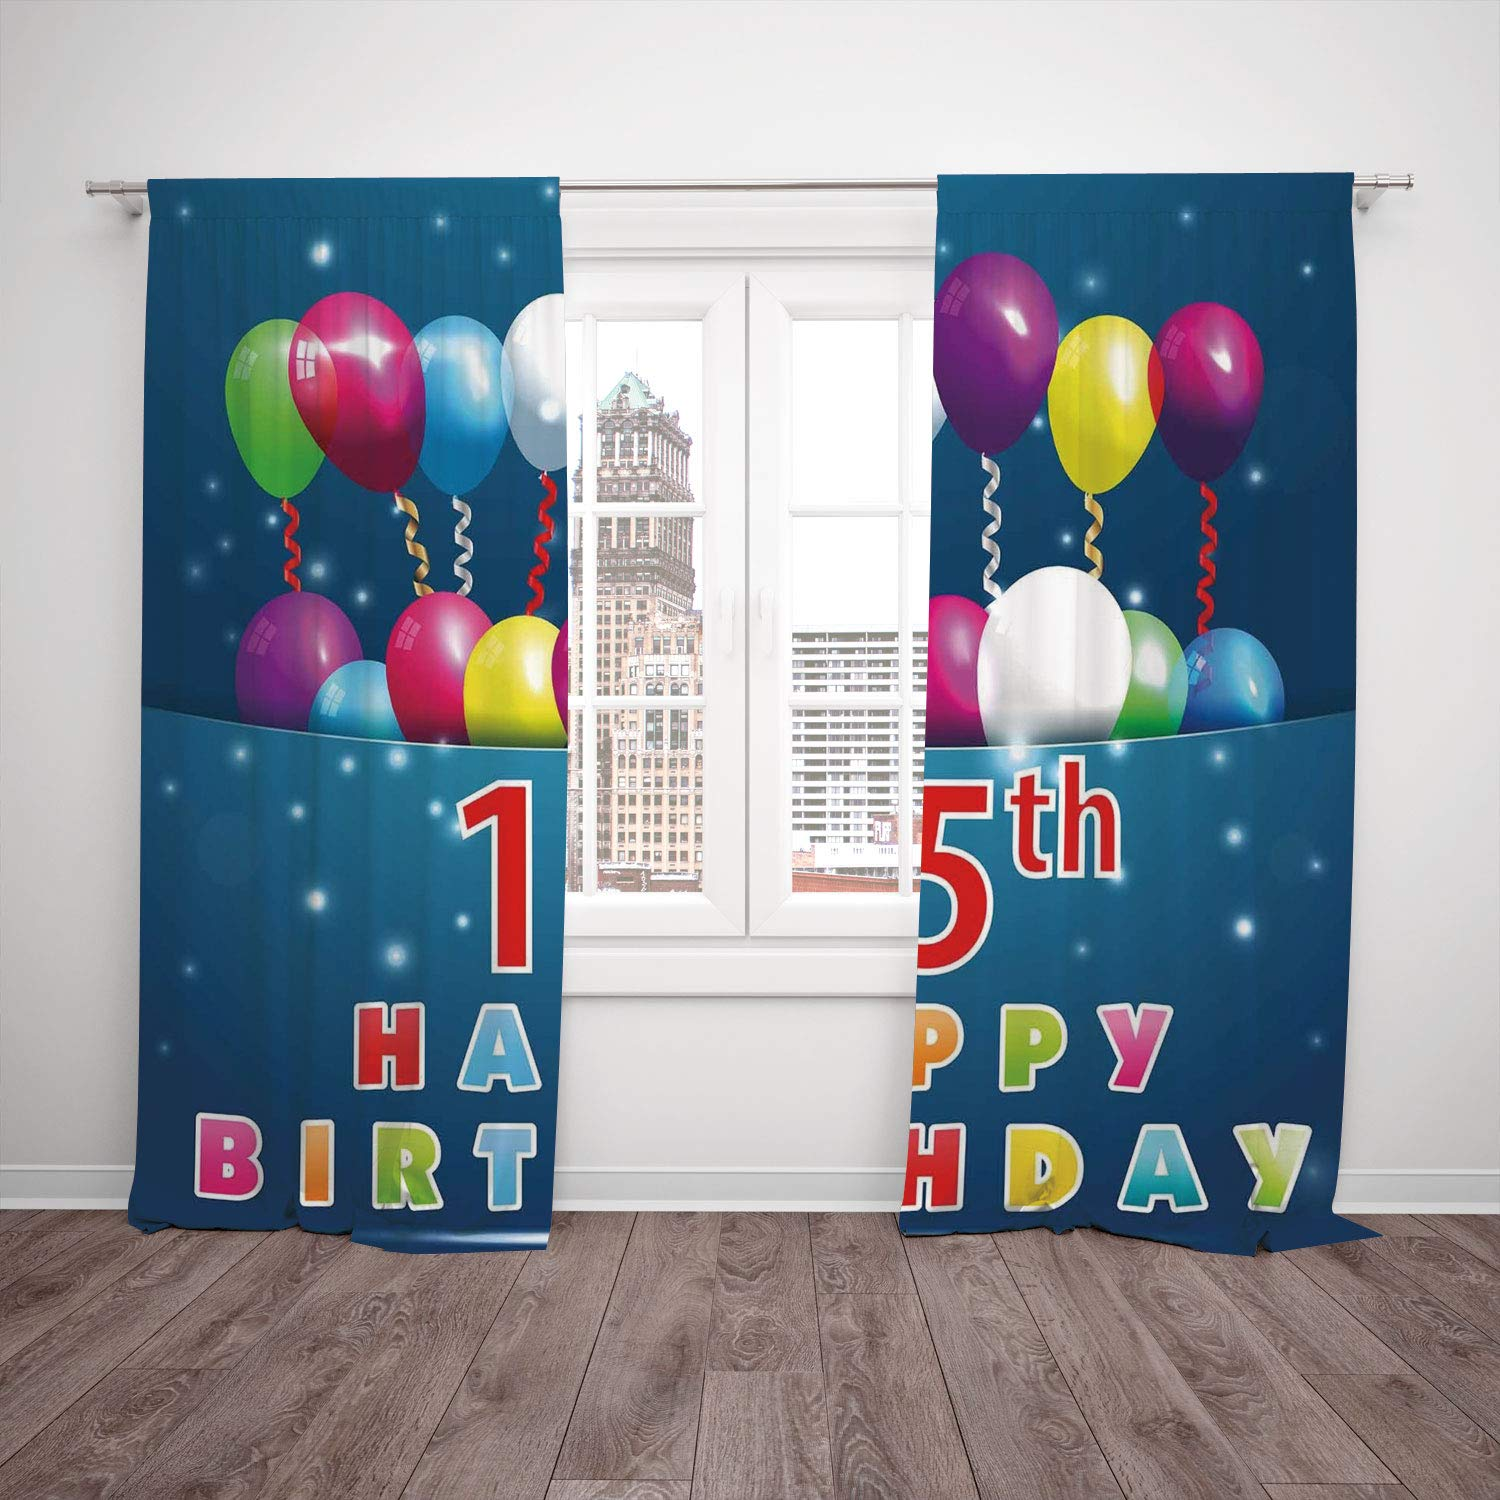 Thermal Insulated Blackout Window Curtain 15th Birthday Decorations Festive Occasion Surprise Party Theme Balloons And Curly Ribbons Multicolor Living Room Bedroom Kitchen Cafe Window Drapes 2 Panel S Amazon In Home Kitchen